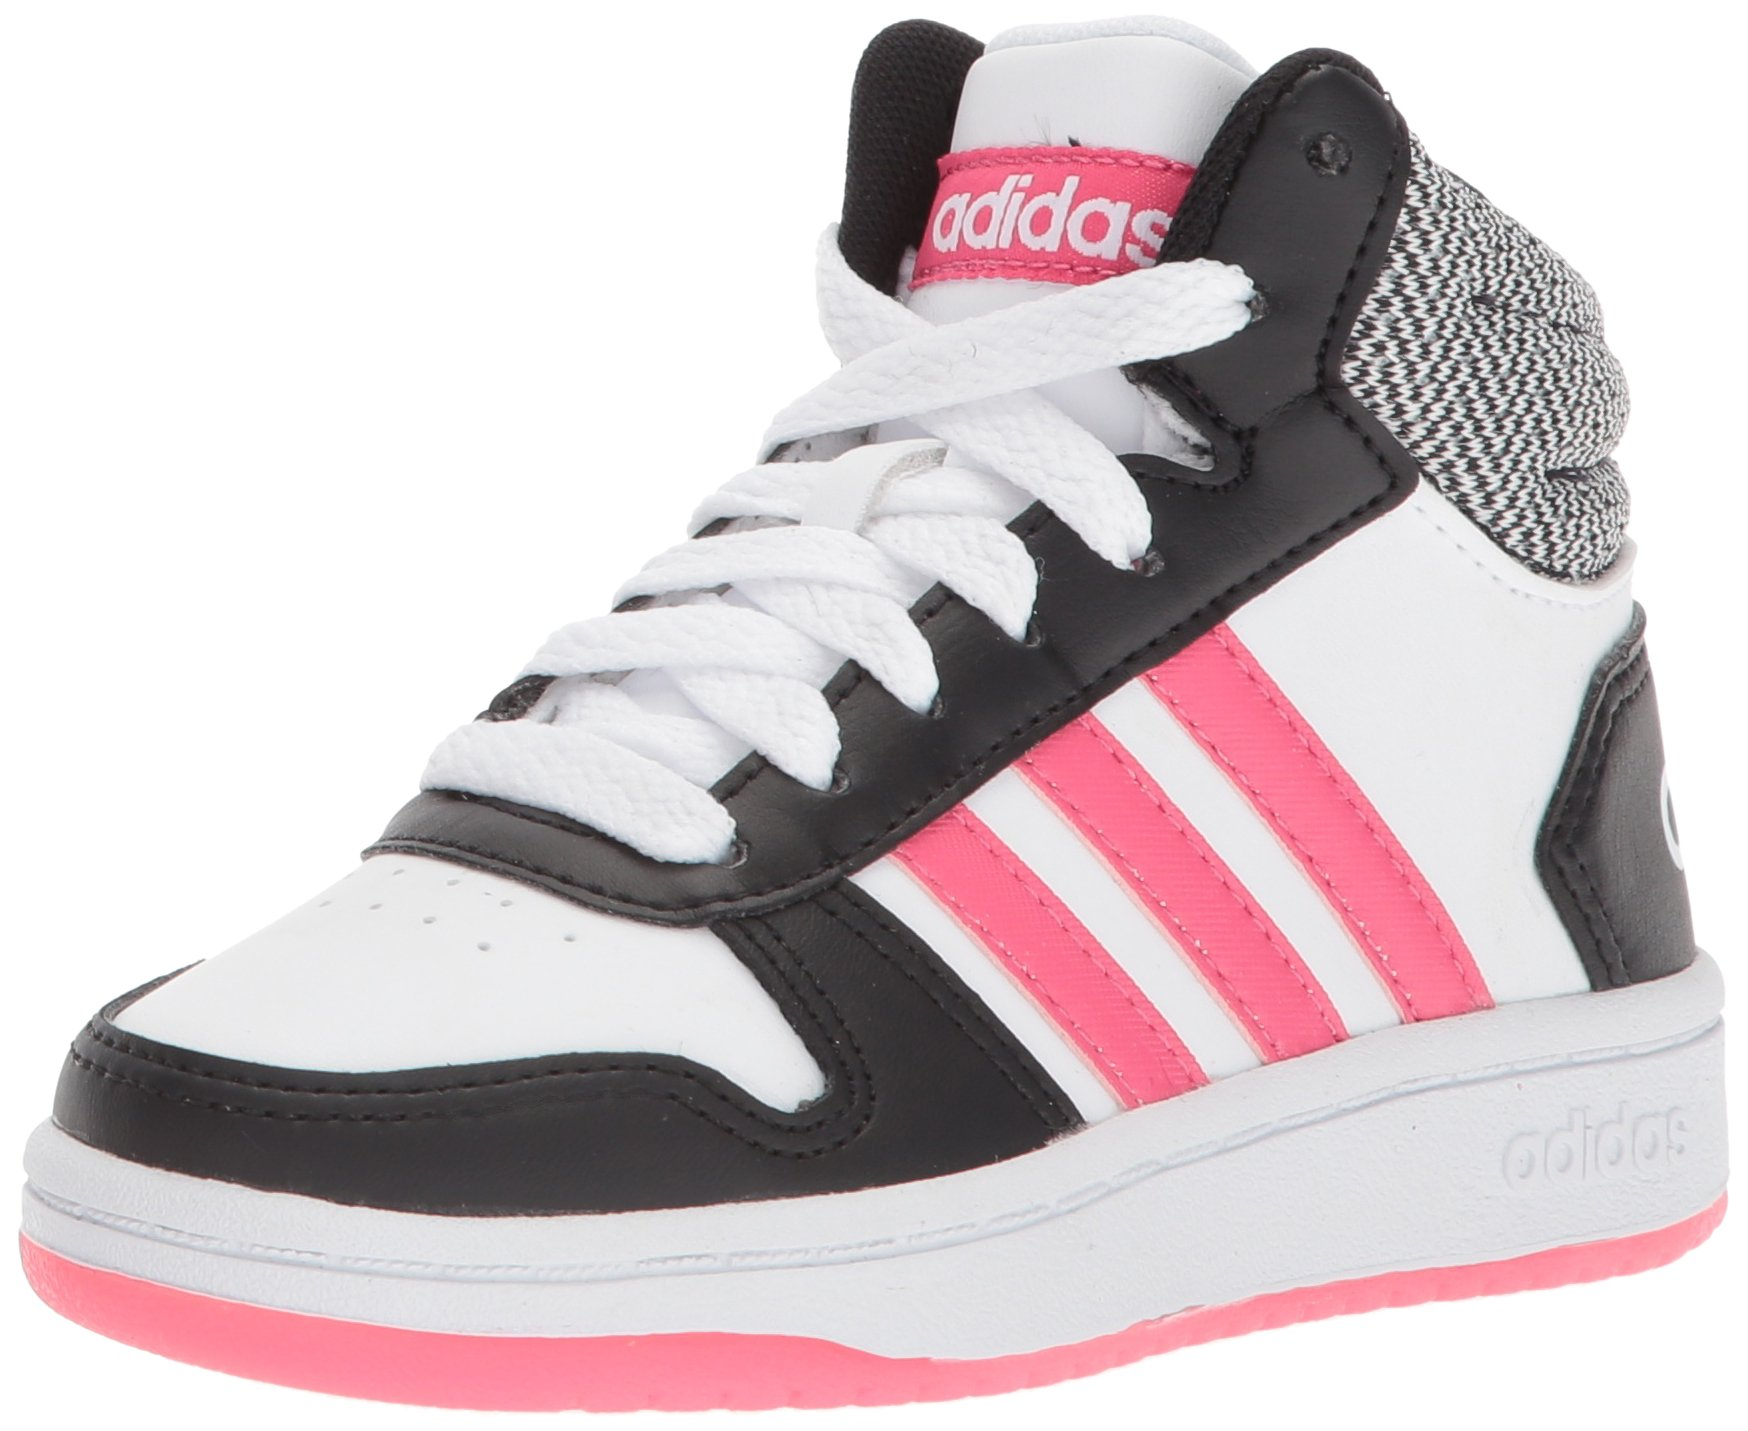 adidas Kids' Hoops Mid 2.0, Core Black/Real Pink/White, 3 M US Little Kid